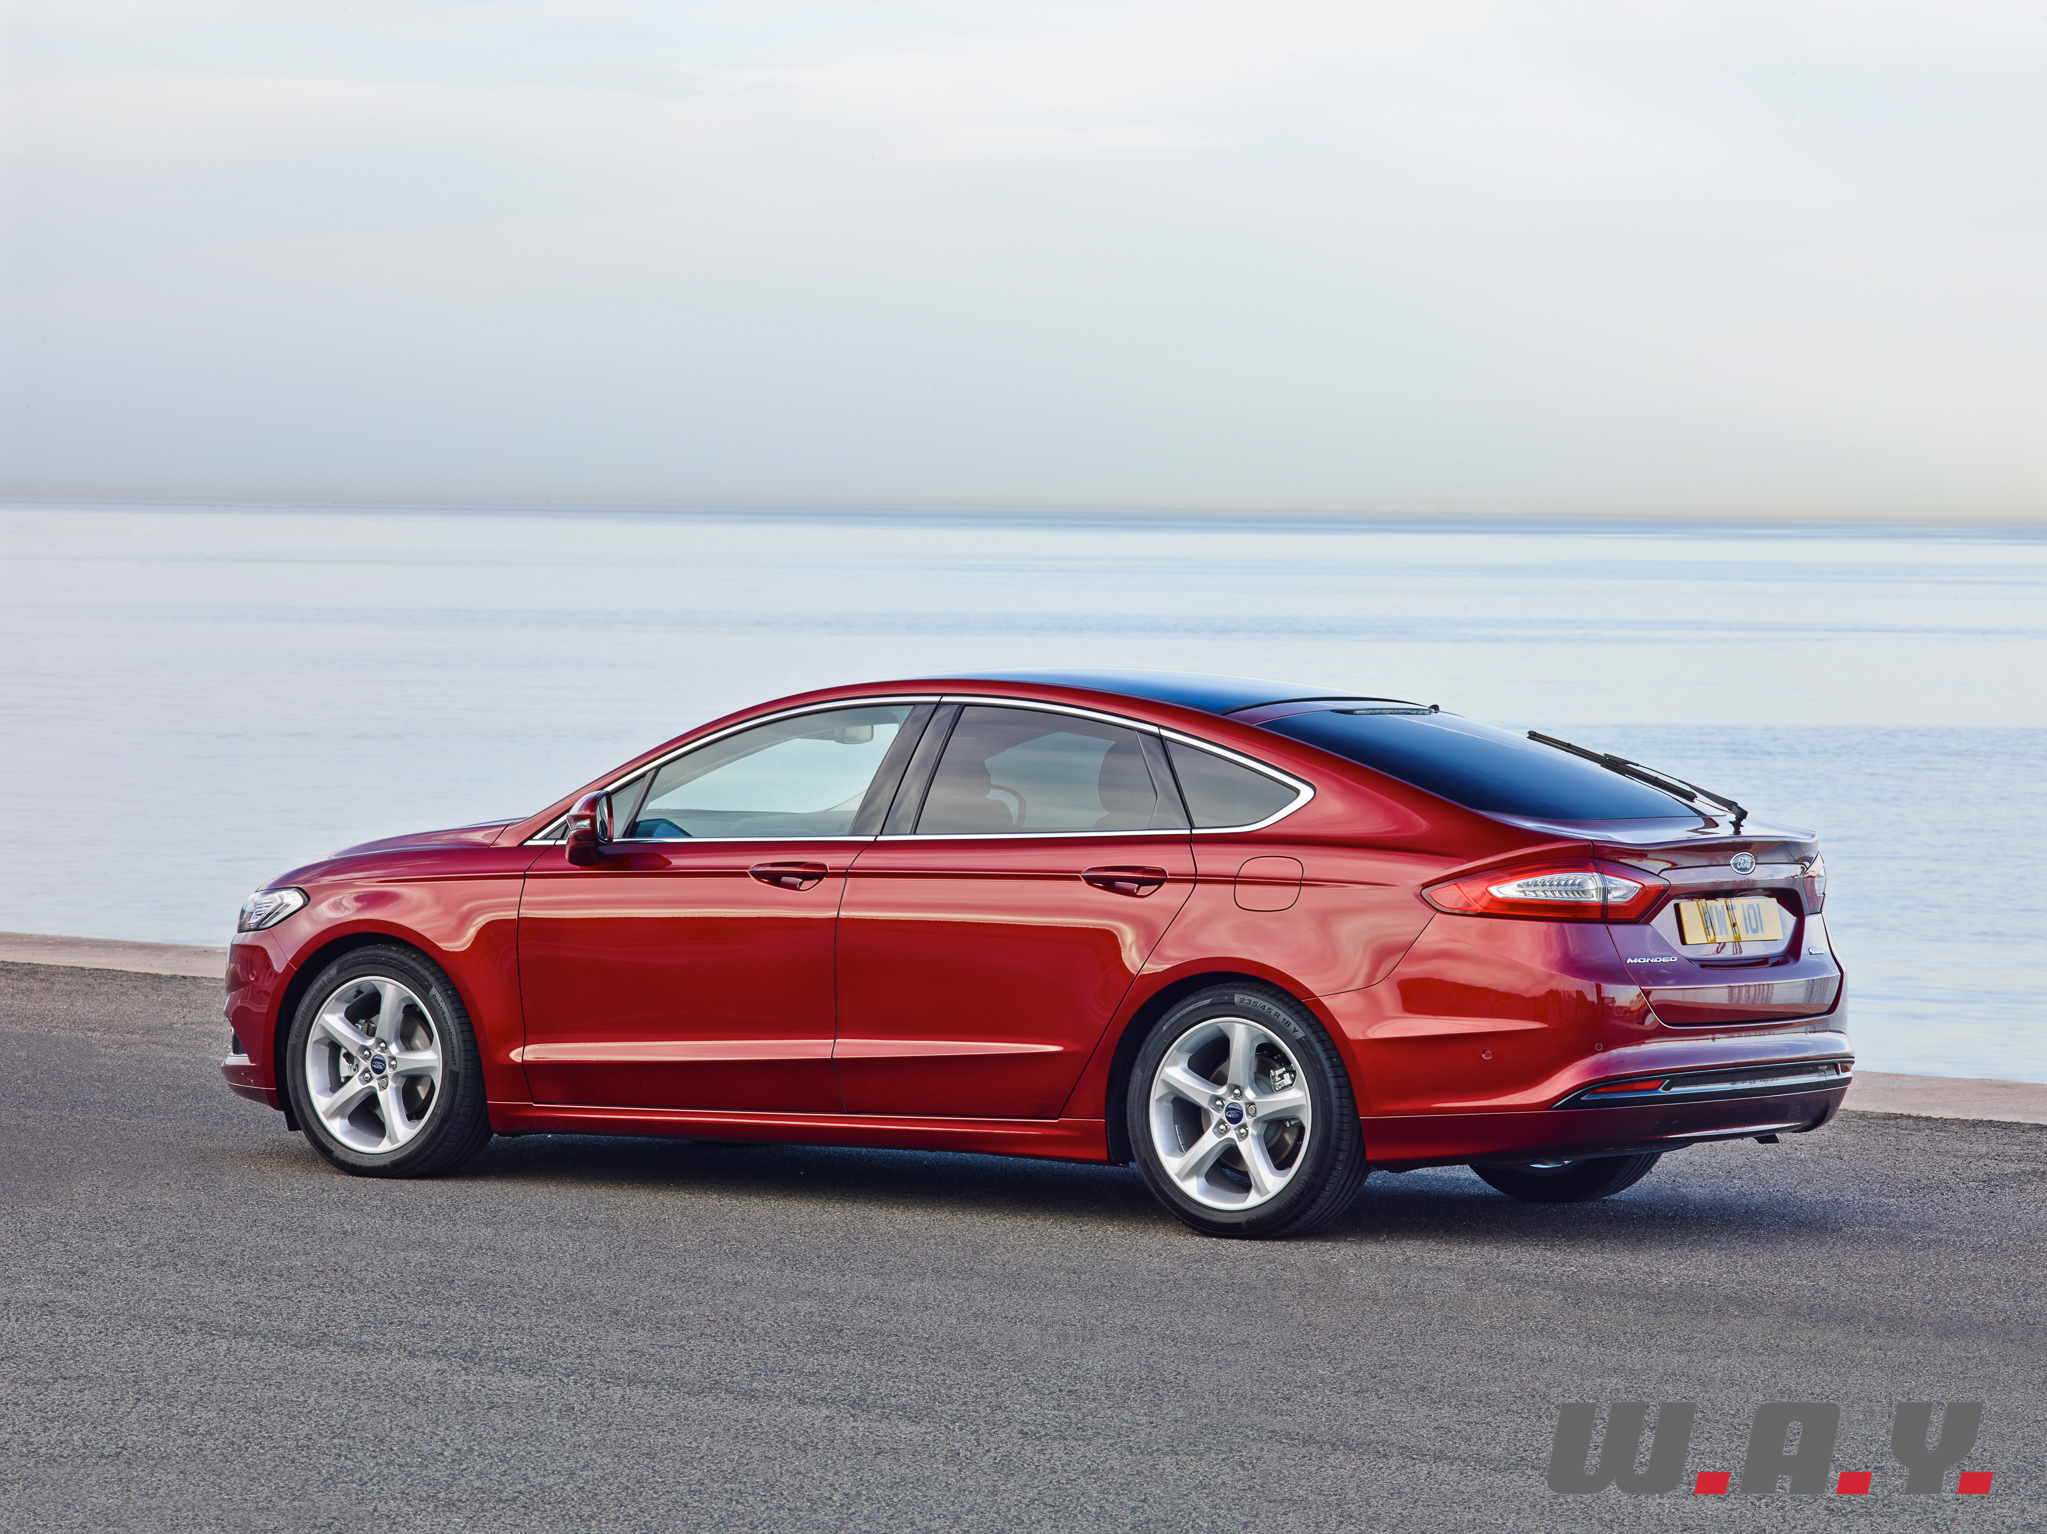 FordMondeo-18